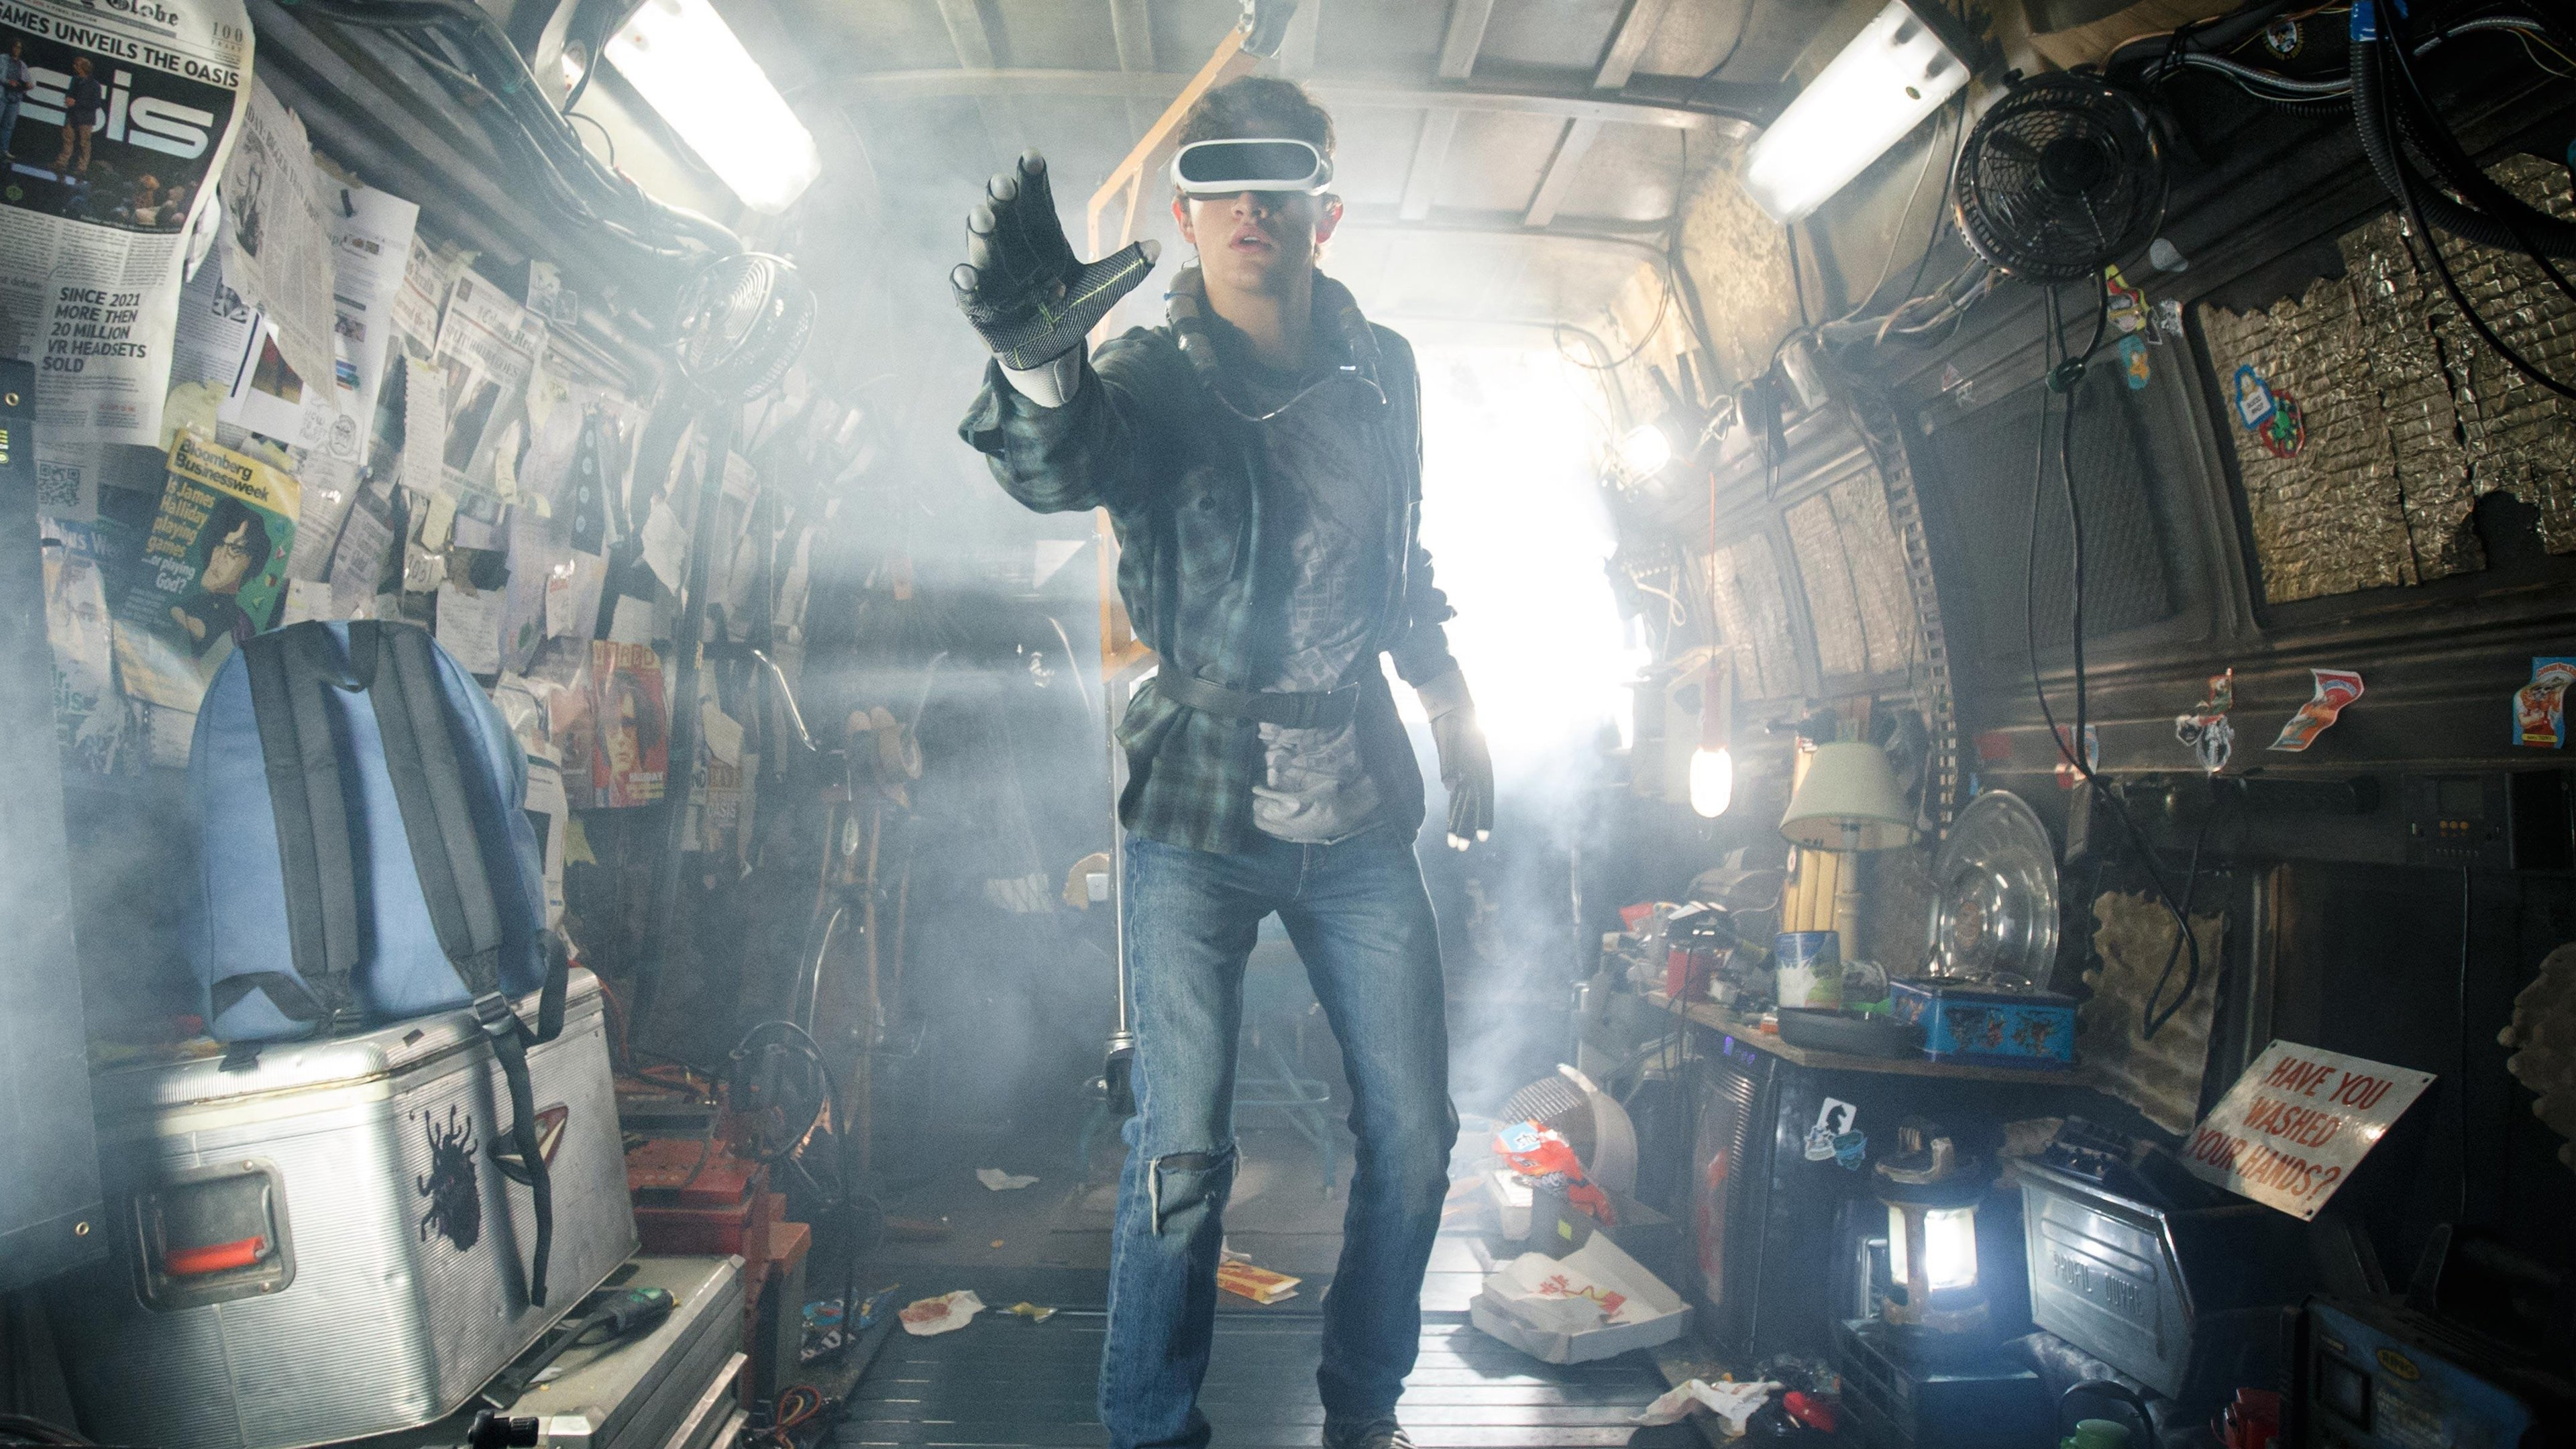 Free Download Ready Player One 2018 Movie Wallpaper Hd